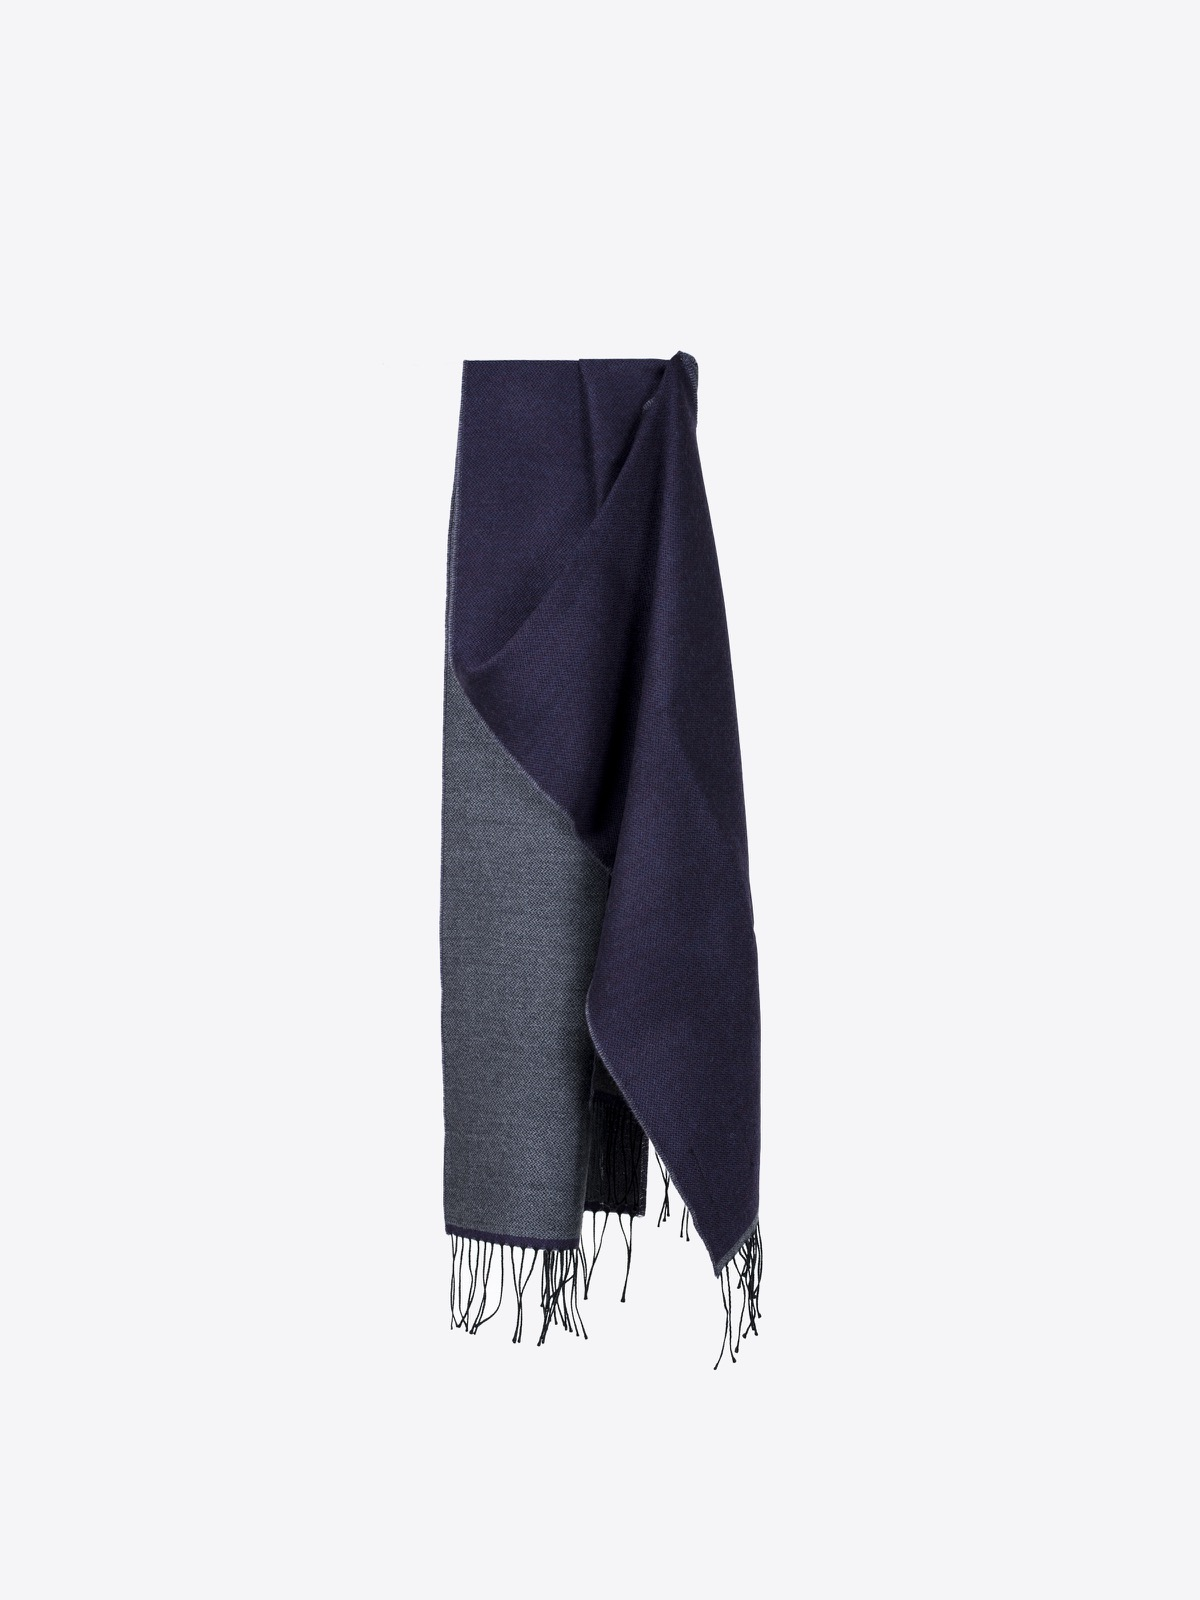 airbag craftworks barbican | grey purple